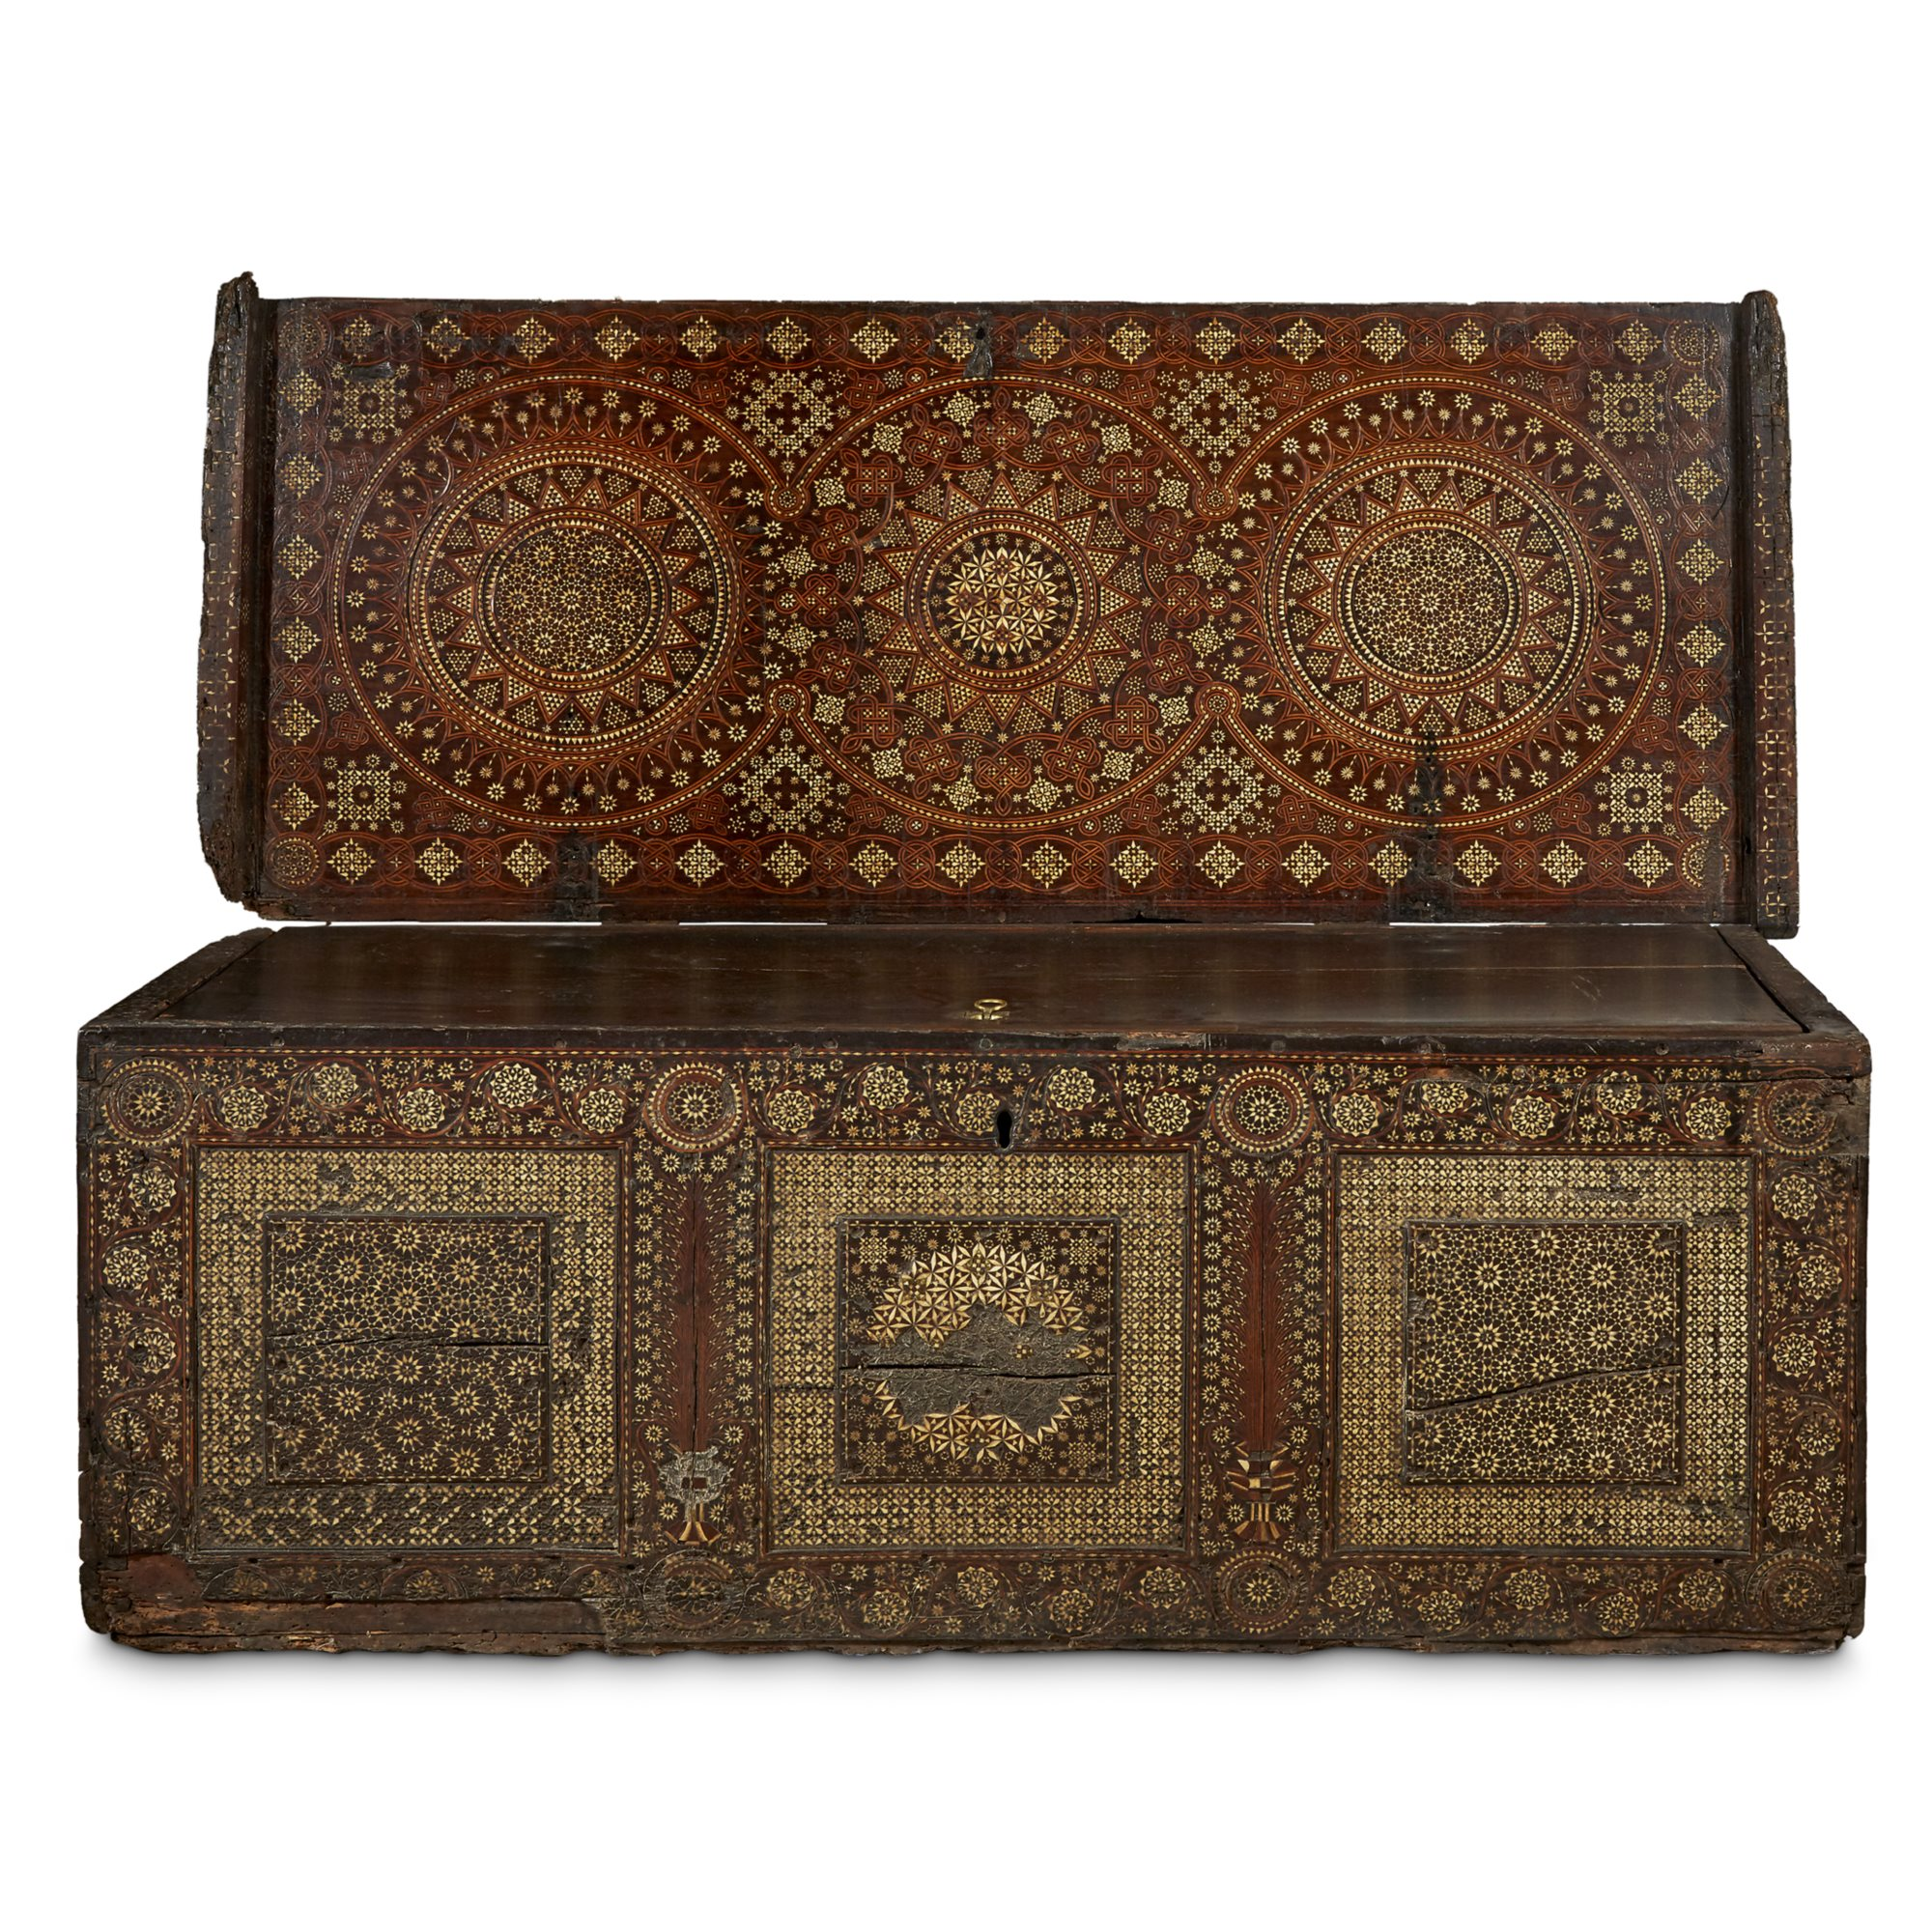 Lot 49: A Nasrid-style early marquetry and ivory inlaid cassone, Venice or Barcelona, late 15th century, skyrocketed past its pre-sale estimate of $6,000-8,000 to sell for $59,375